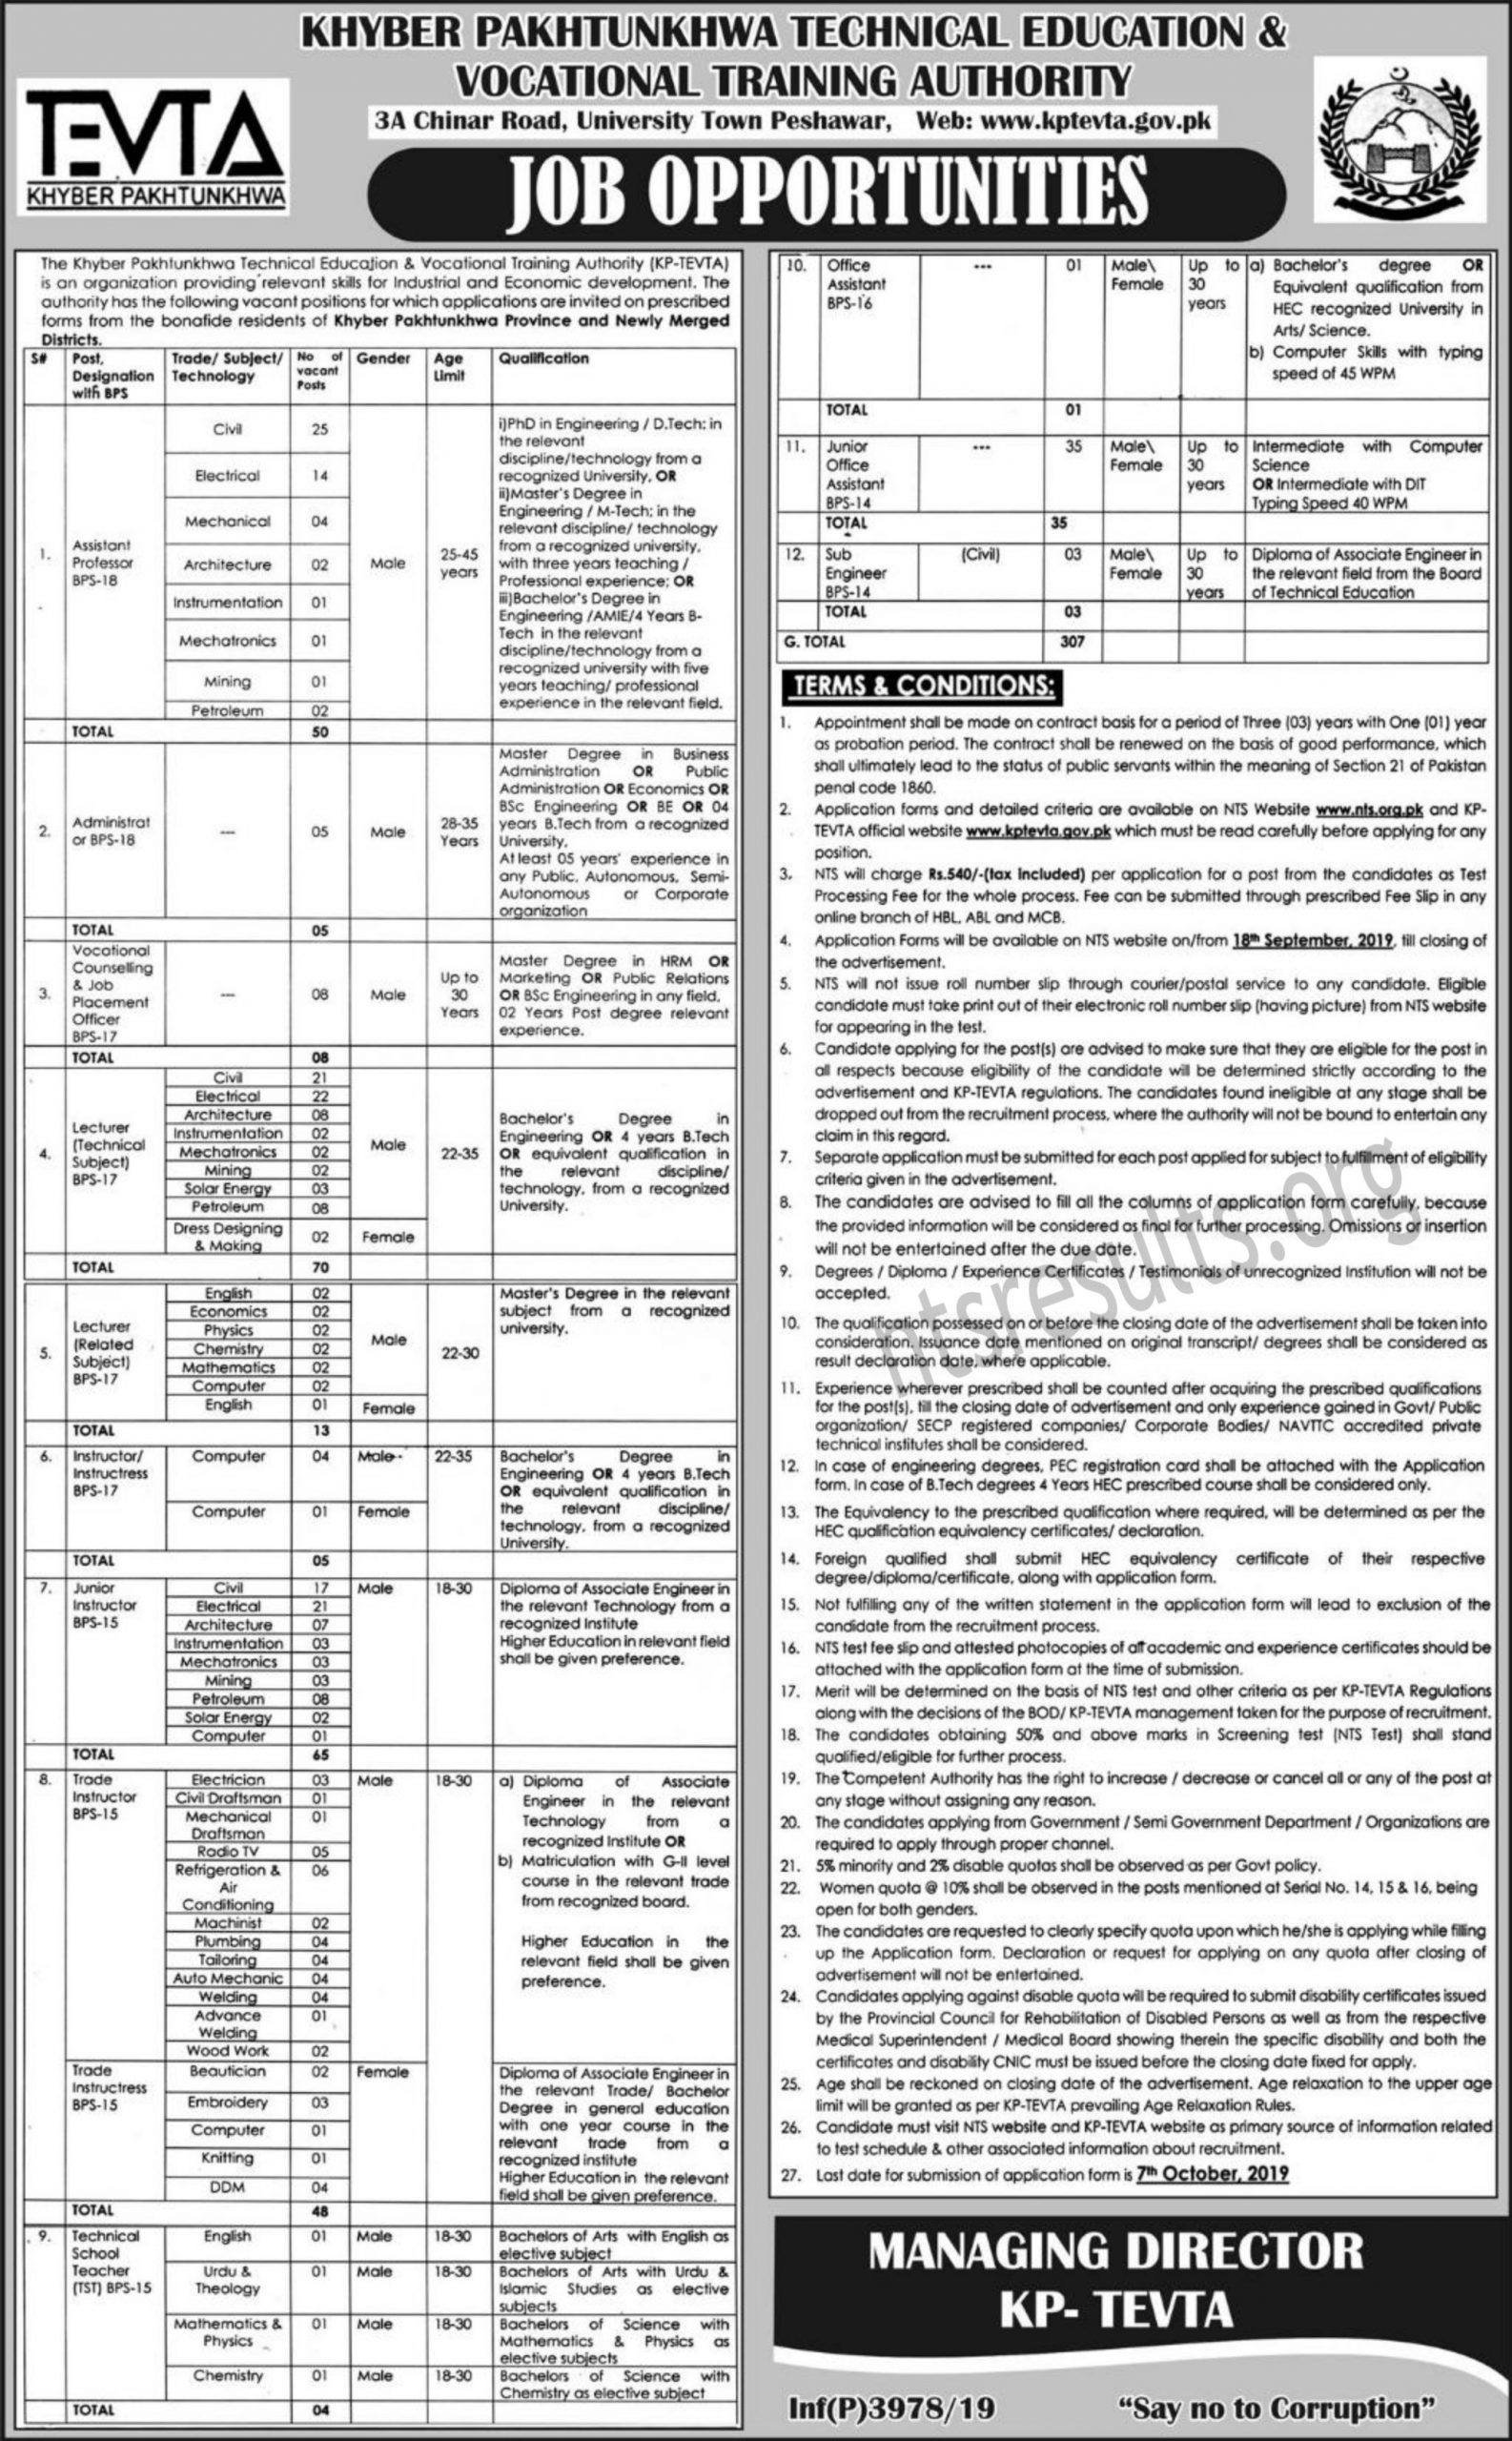 KPK Tevta Technical Education Vocational Training Authority NTS Test Answer Keys Result BPS-17 and Above